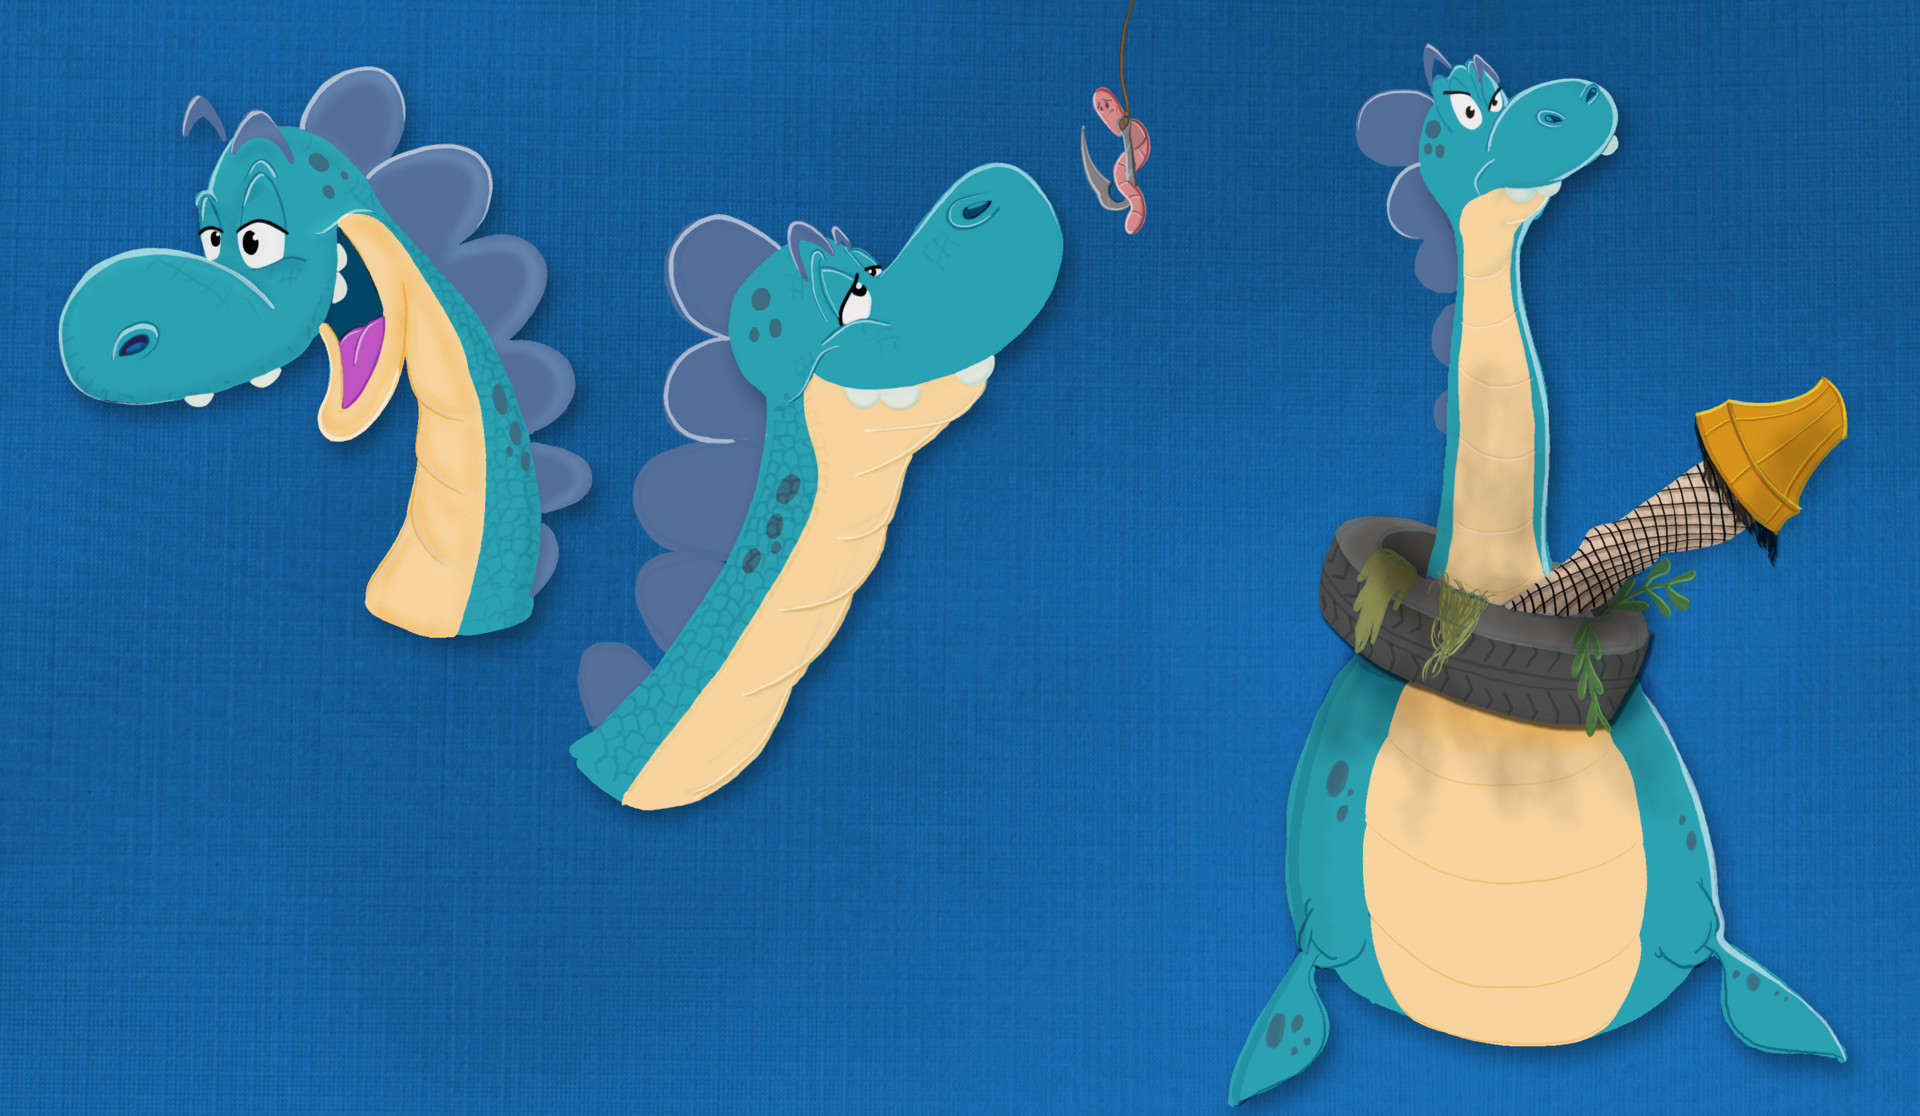 Paul lembcke nessie expressions